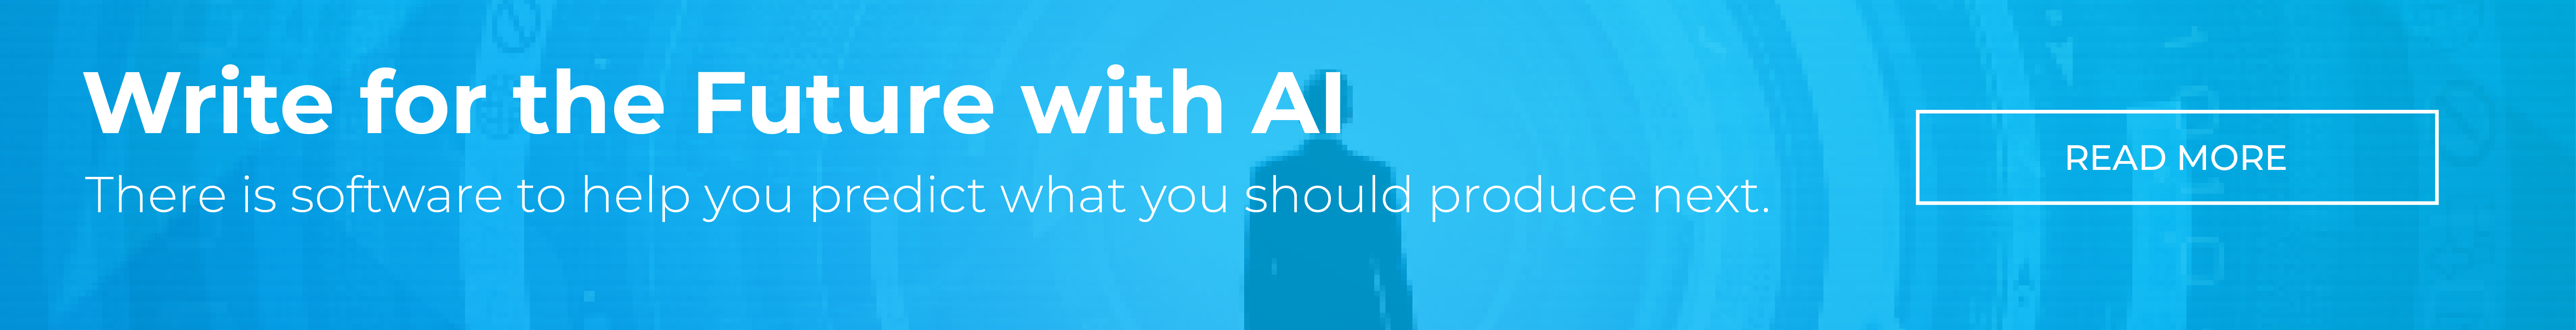 Write for the Future with AI